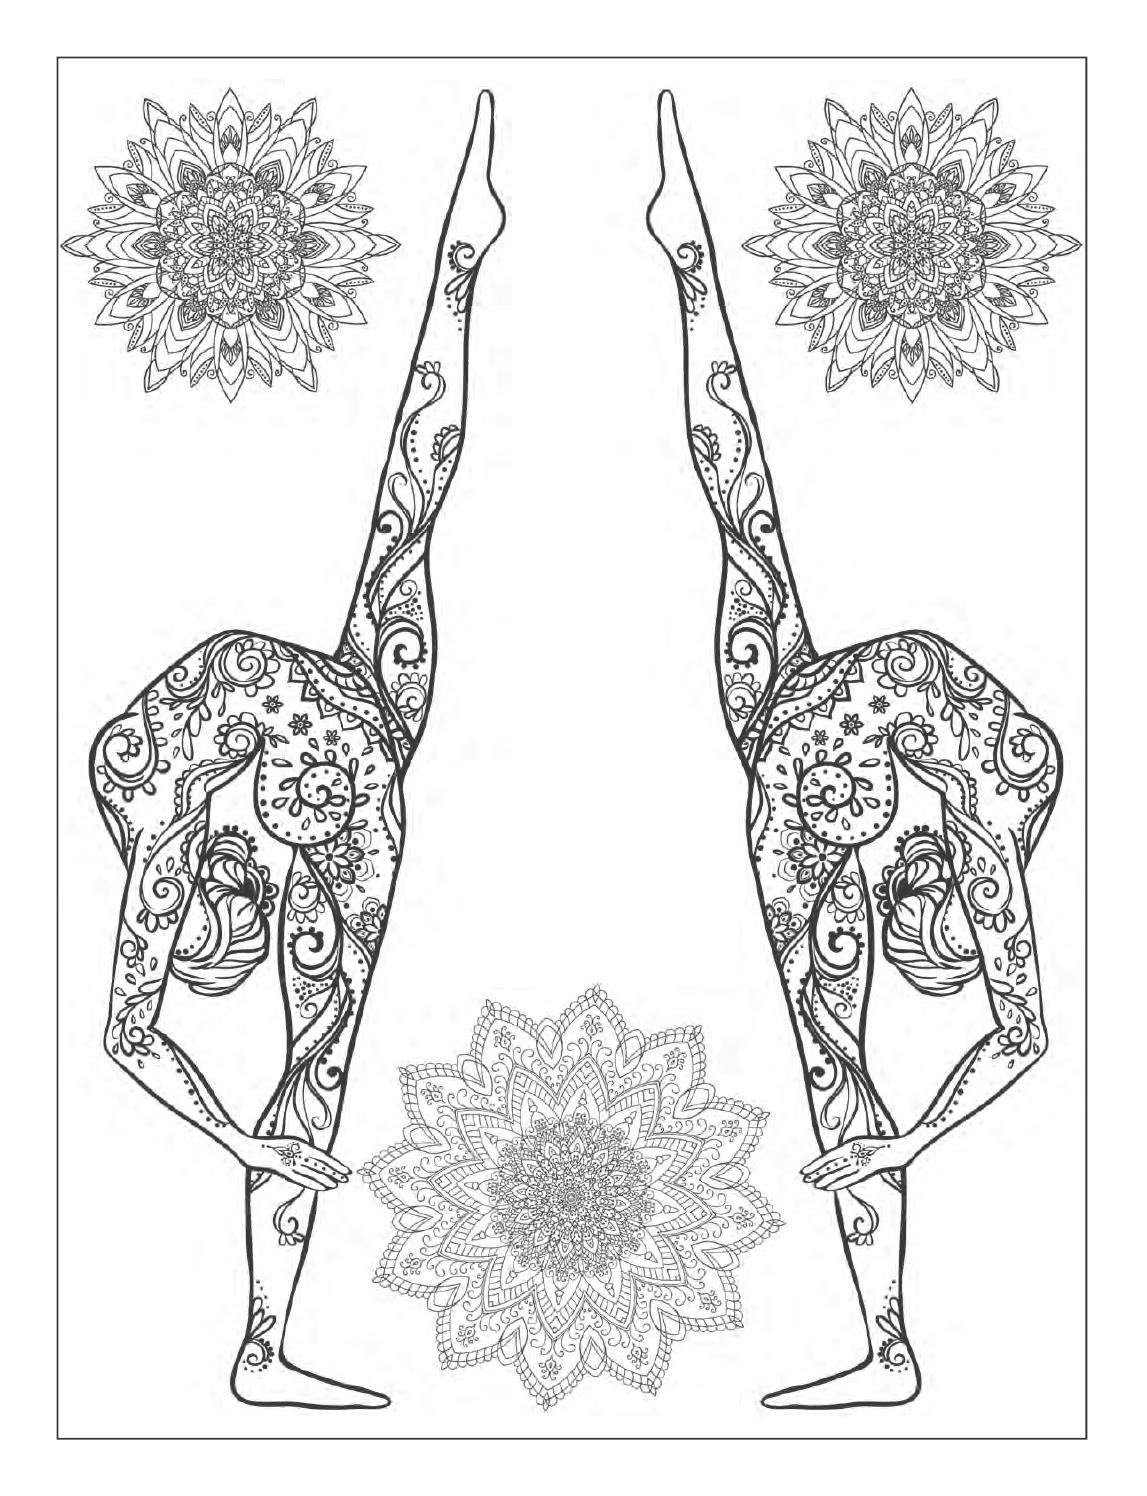 Yoga And Meditation Coloring Book For Adults With Yoga Poses And Mandalas Designs Coloring Books Coloring Pages Coloring Books